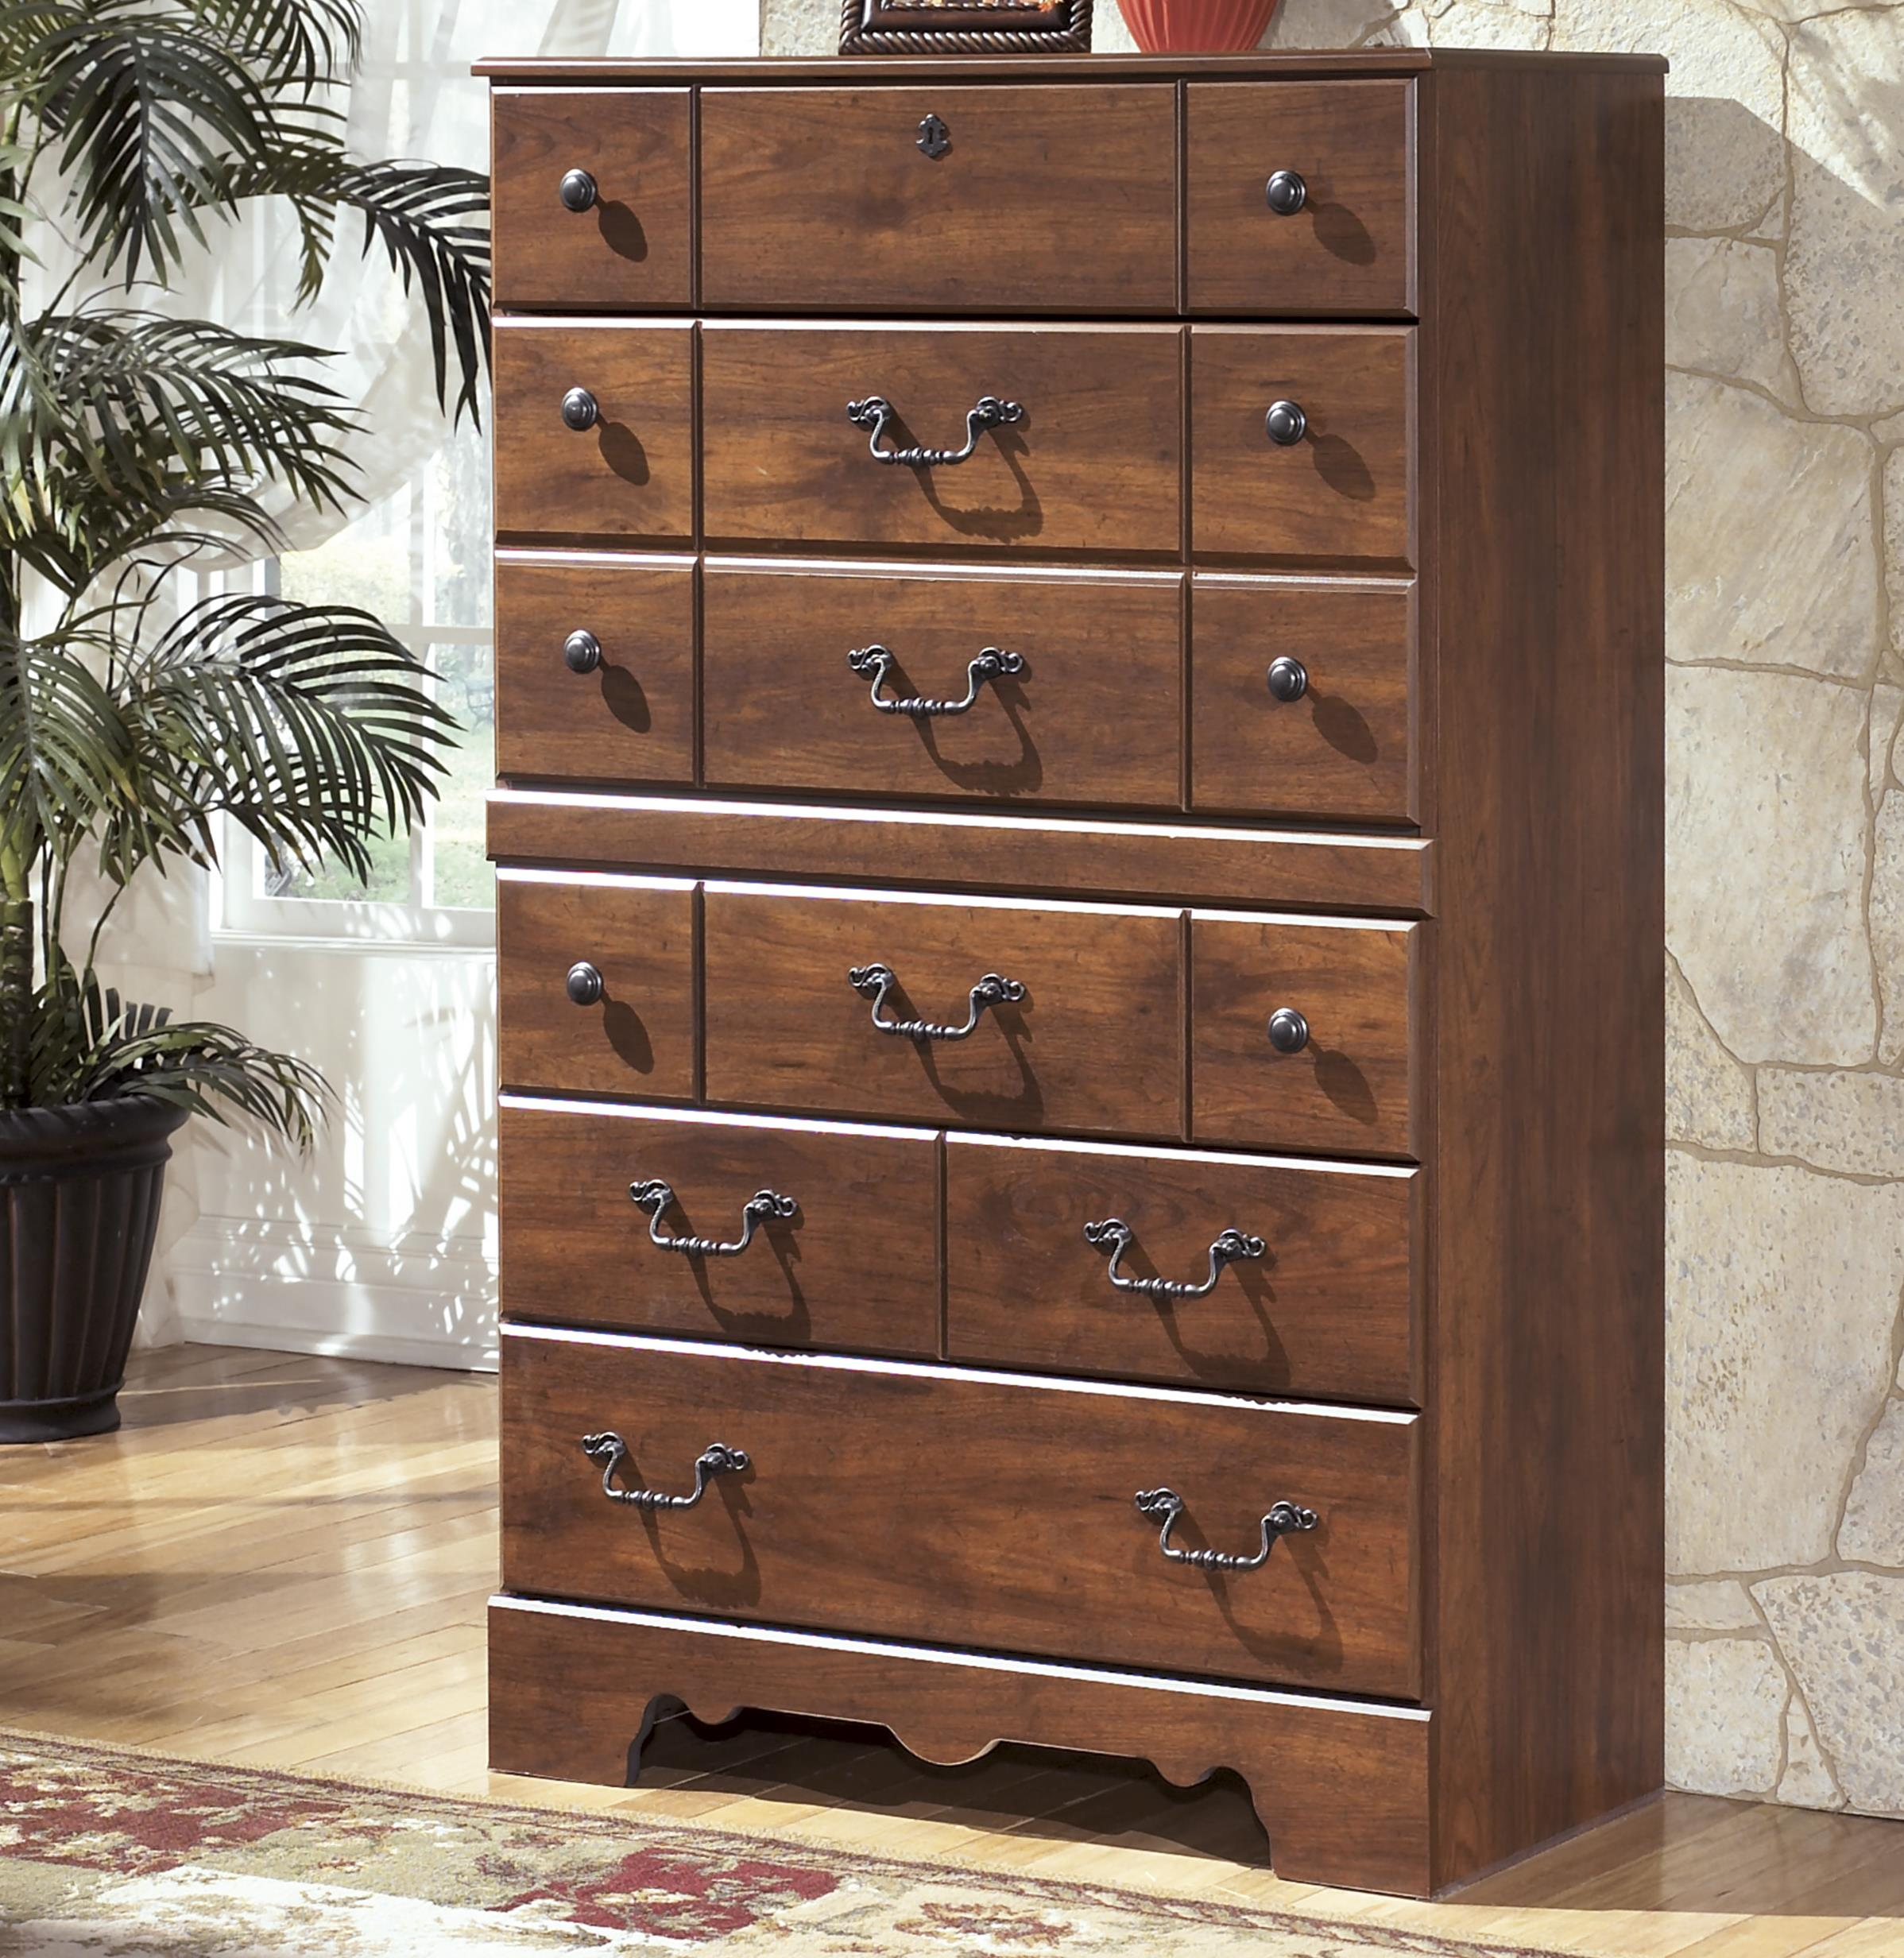 Signature Design by Ashley Timberline 5 Drawer Chest - Item Number: B258-46